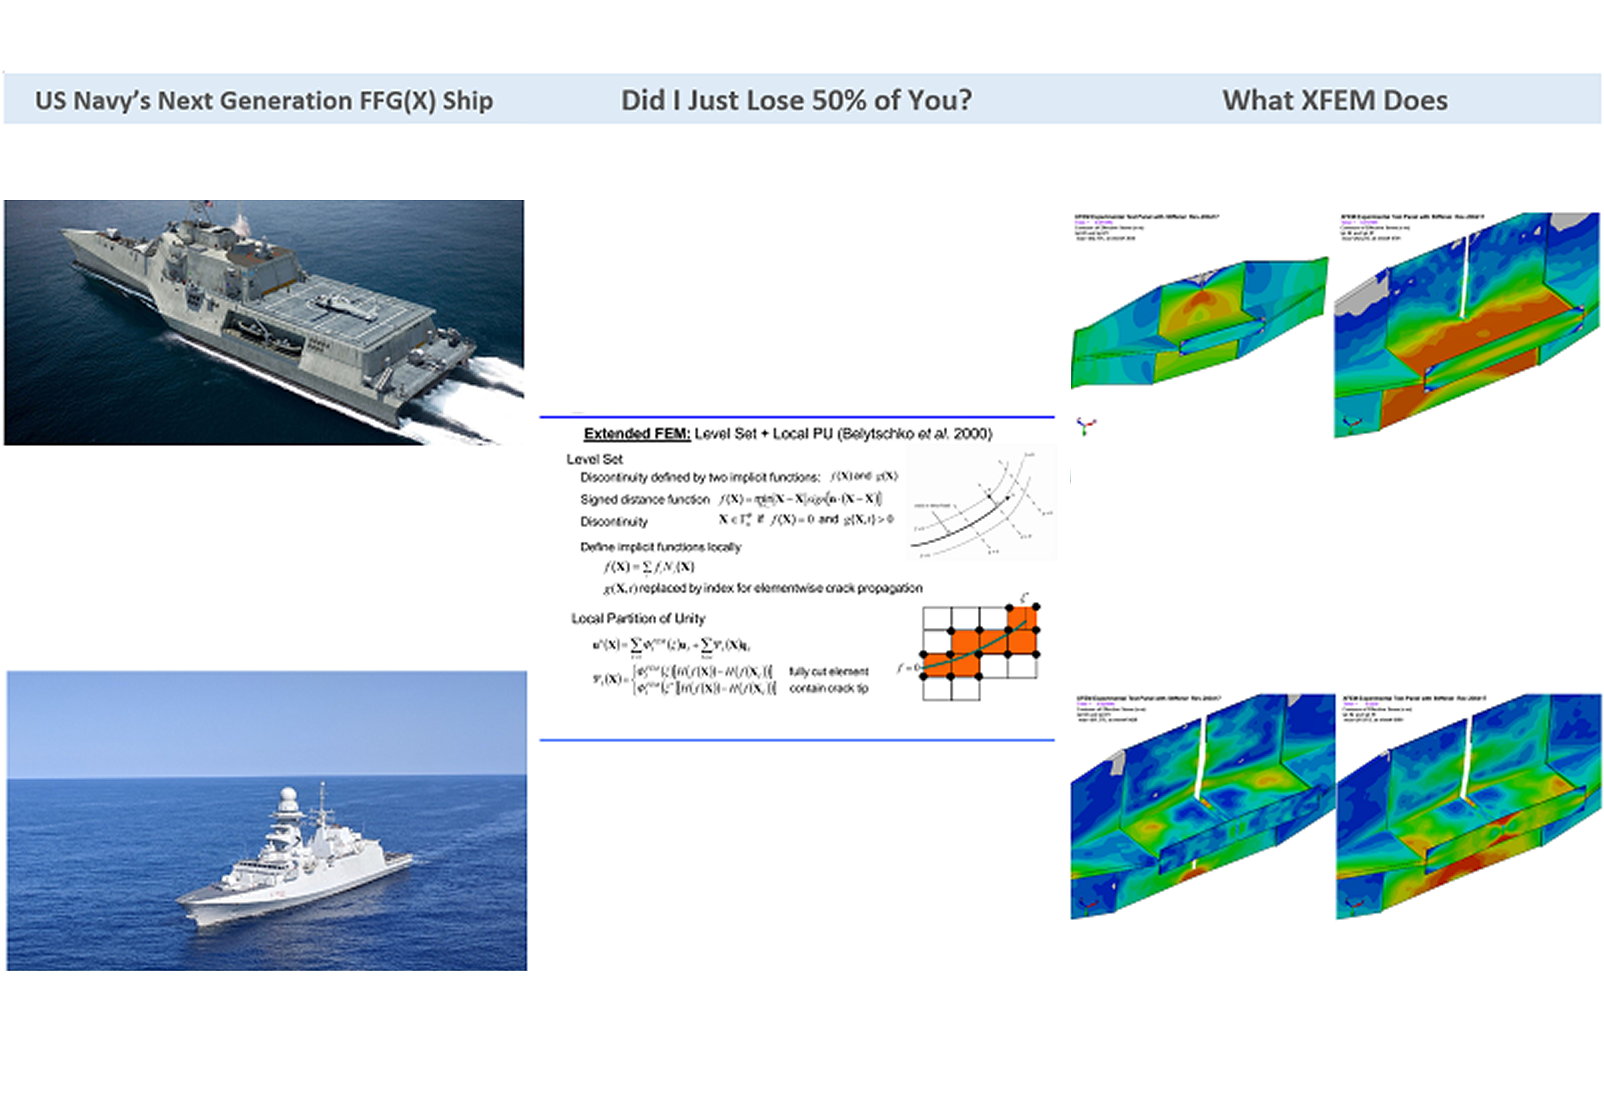 XFEM FEA Consulting Services - FFG(X) Ship Design Fracture Prevention - Predictive Engineering Consulting Services